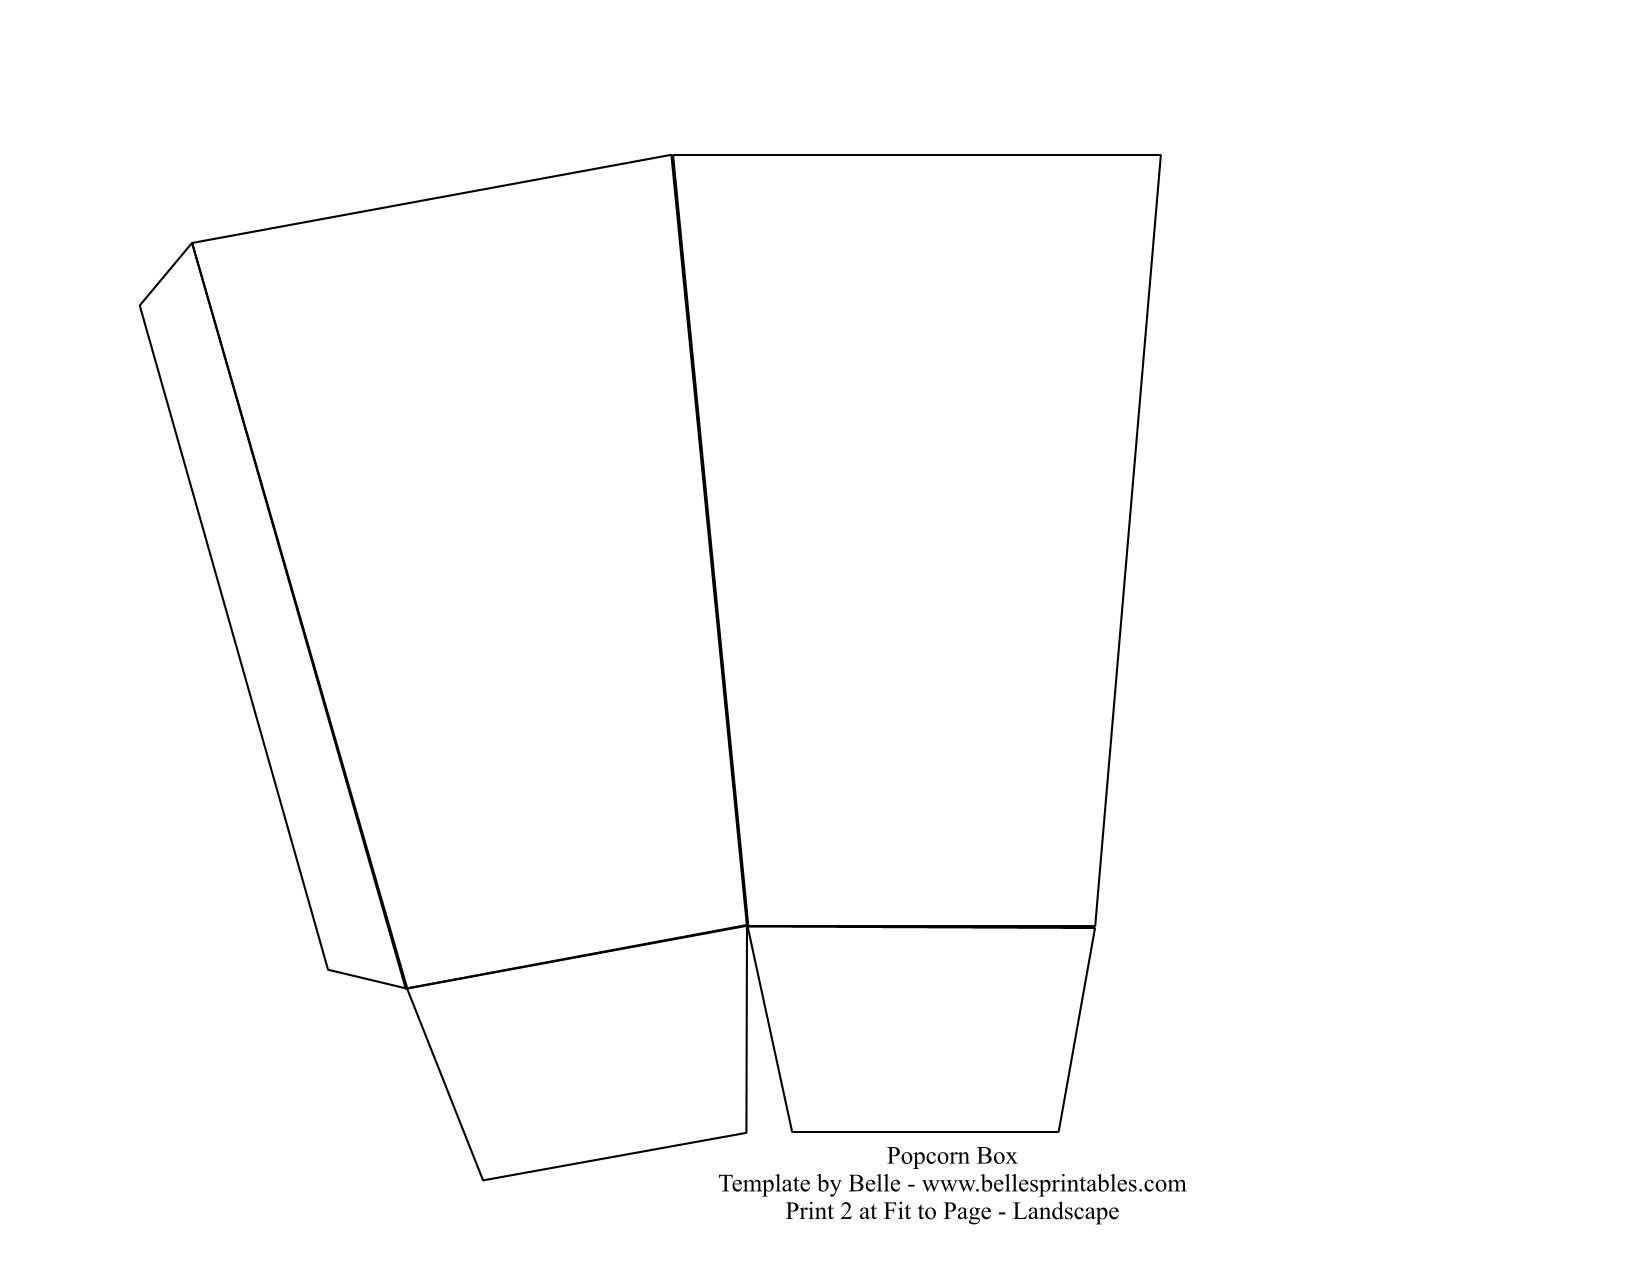 image about Printable Popcorn Template called Popcorn Box Template --\u003e BellesPrintables do-it-yourself, printable